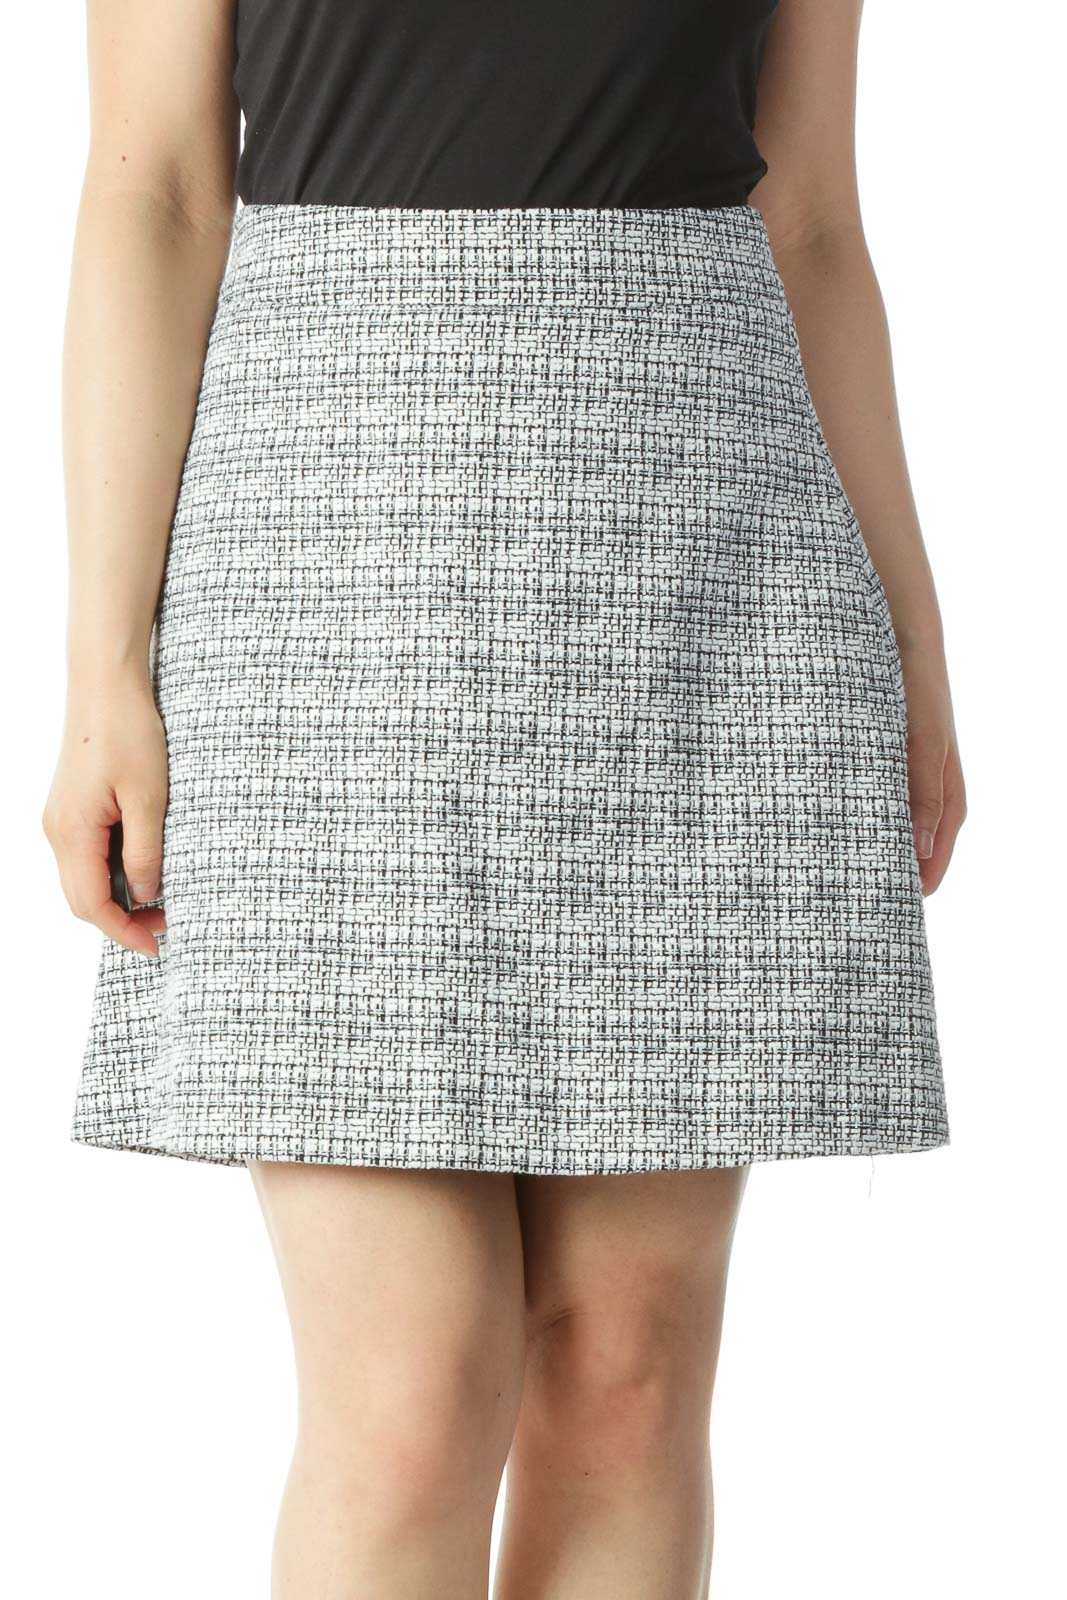 Black and White Textured A-Line Skirt